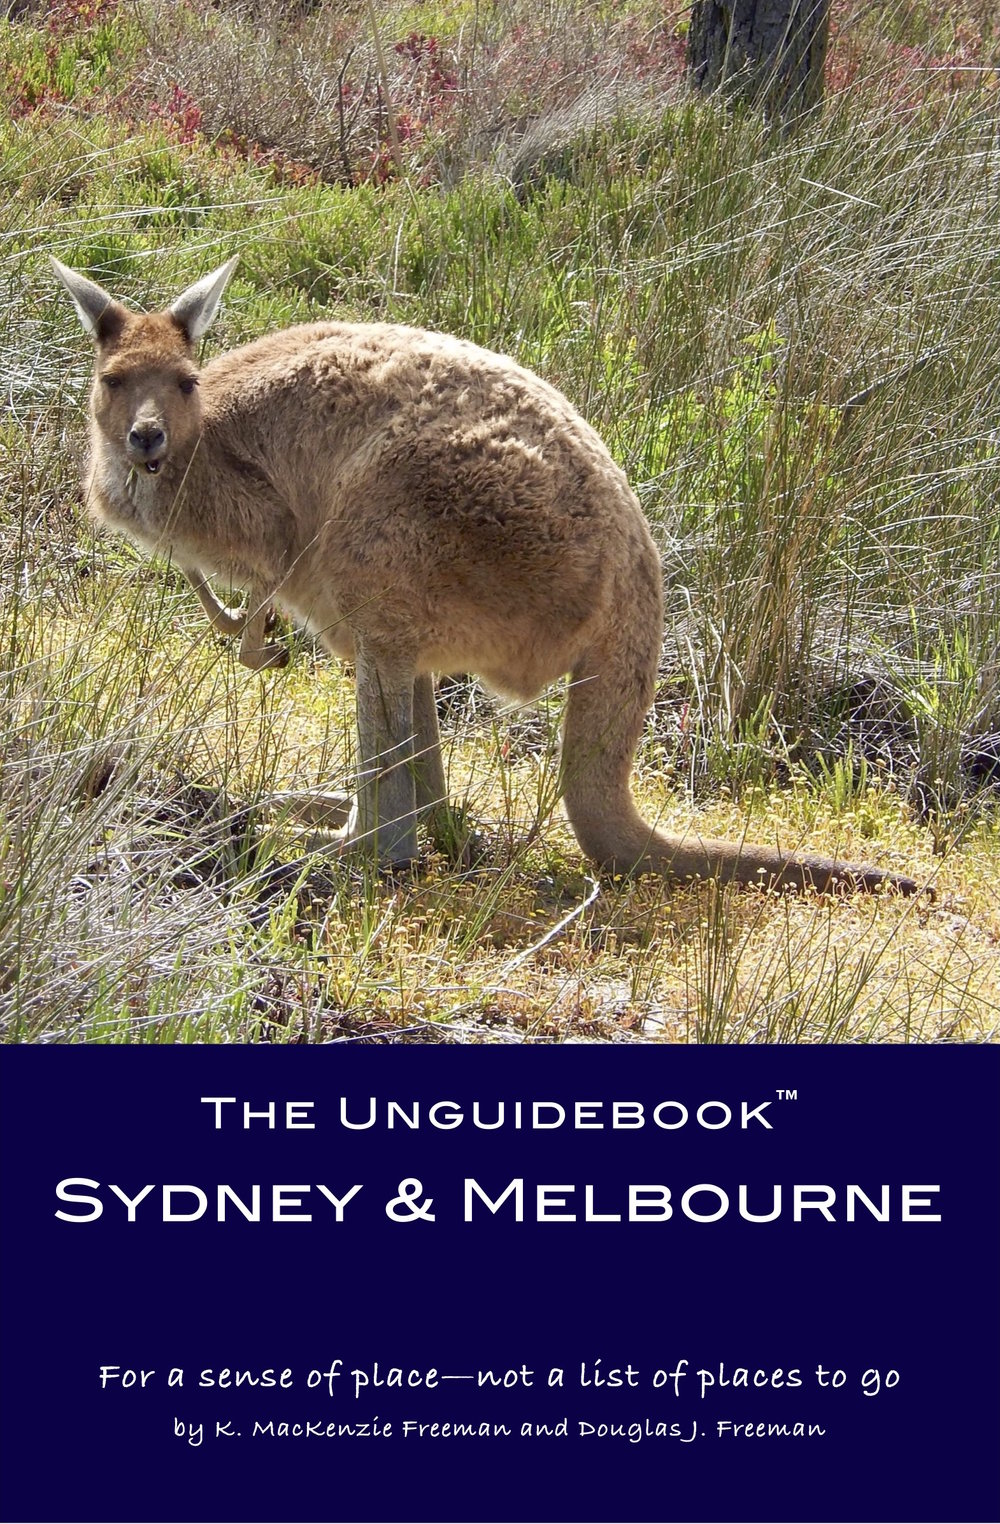 "- Want to know what these exciting cities are like even before you set foot in the Land Down Under? The Unguidebook Sydney & Melbourne takes you there. It includes all of the marvelous stories found in IThe Unguidebook Sydney, plus 21 more spotlighting Melbourne. In her honest and thorough book review, The Uncorked Librarian calls it, ""A sincere Sydney and Melbourne travel guide unlike any other.""Explore Sydney's incredible waterfront, soaking in her history and passion for the water. Walk through the breathtaking Blue Mountains. Enjoy Melbourne's world-class food and cultural areas. Then take a drive to see Brighton and the spectacular Great Ocean Road. This is one trip you won't forget.Available as an e-book for $4.99 and in paperback for $8.50."